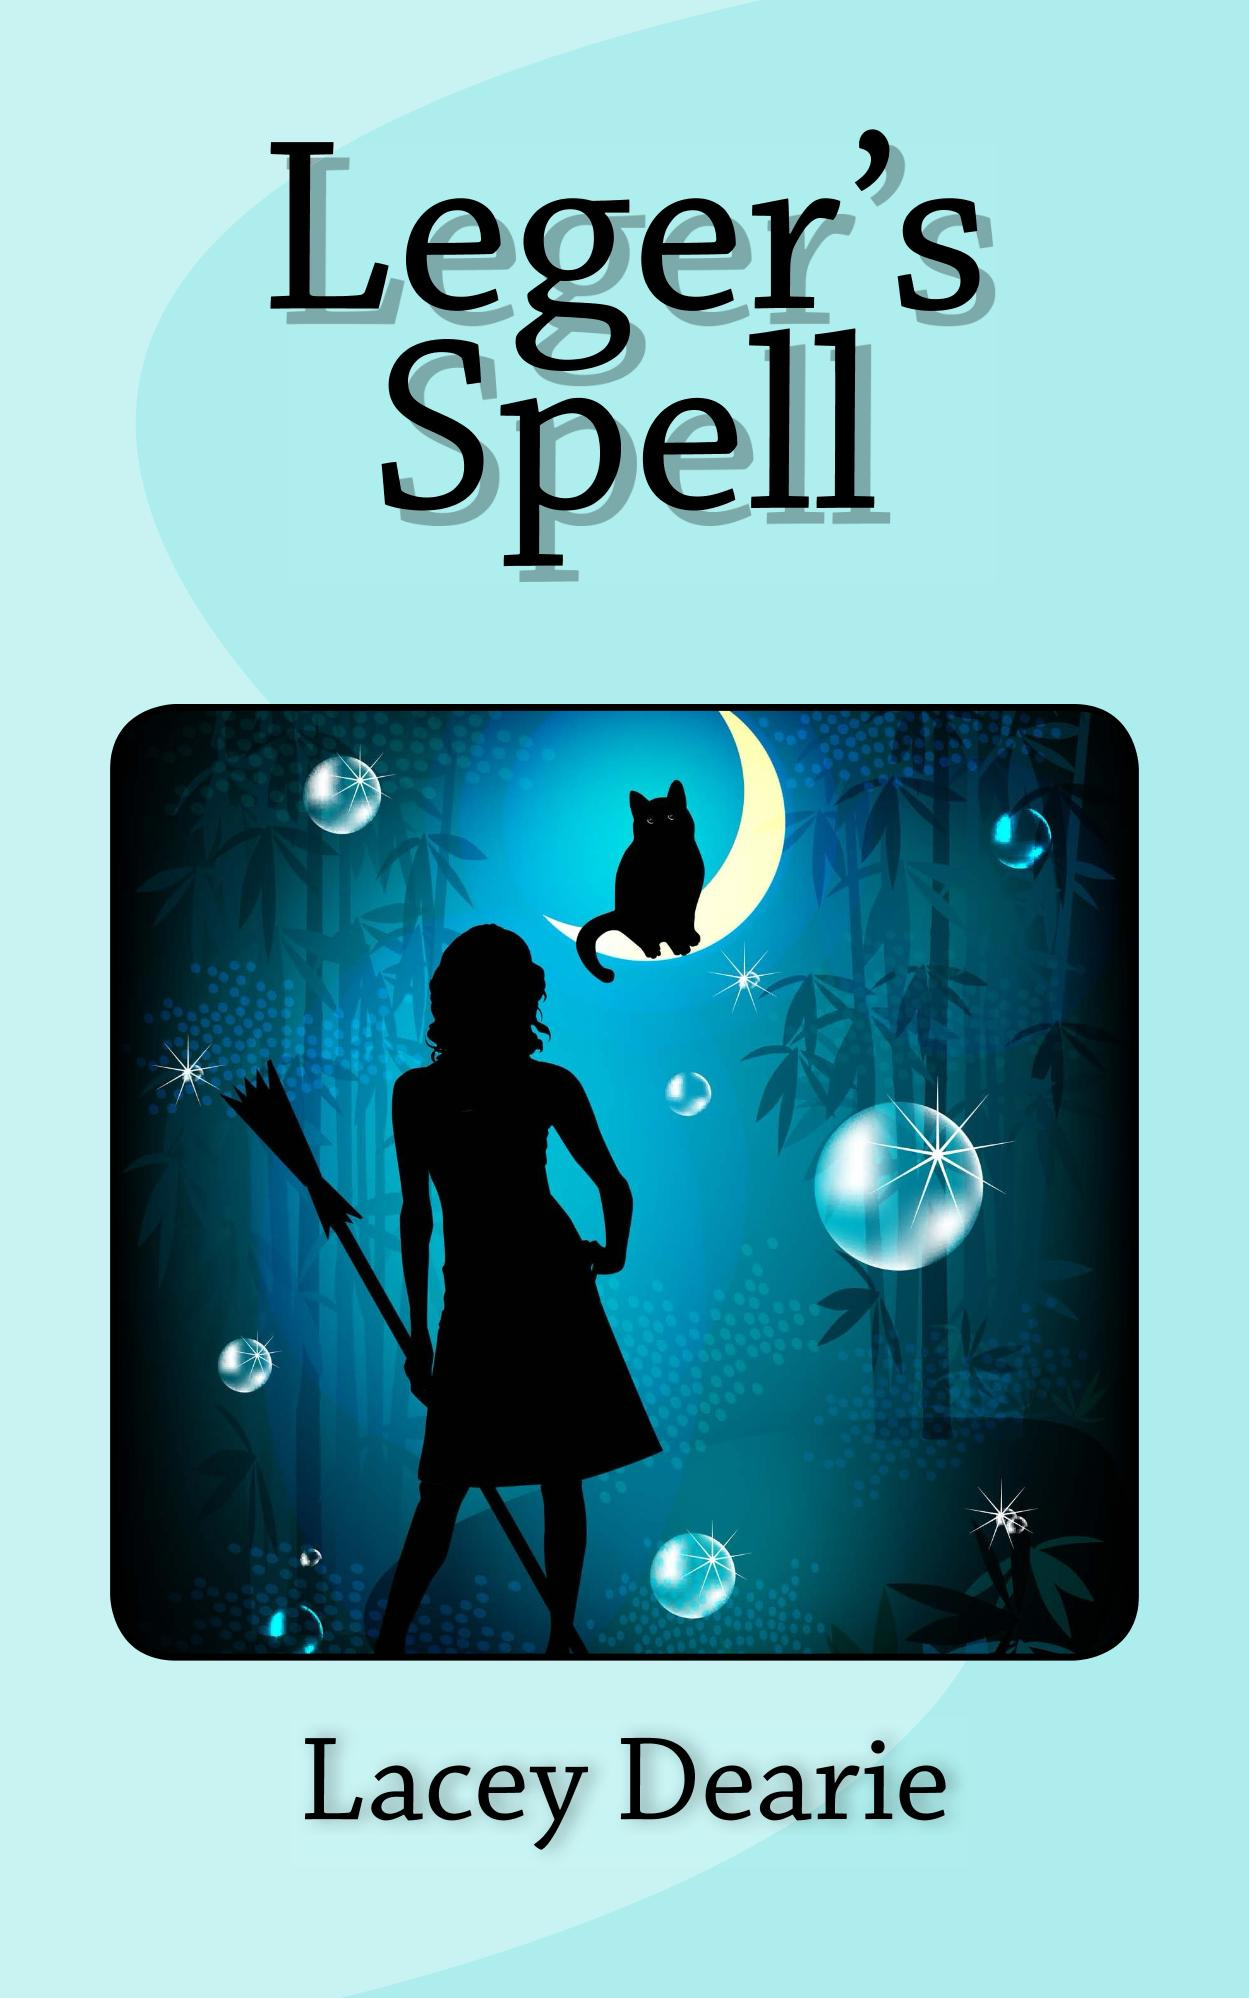 lacey dearie books seasonal cat sleuth story halloween leger's spell